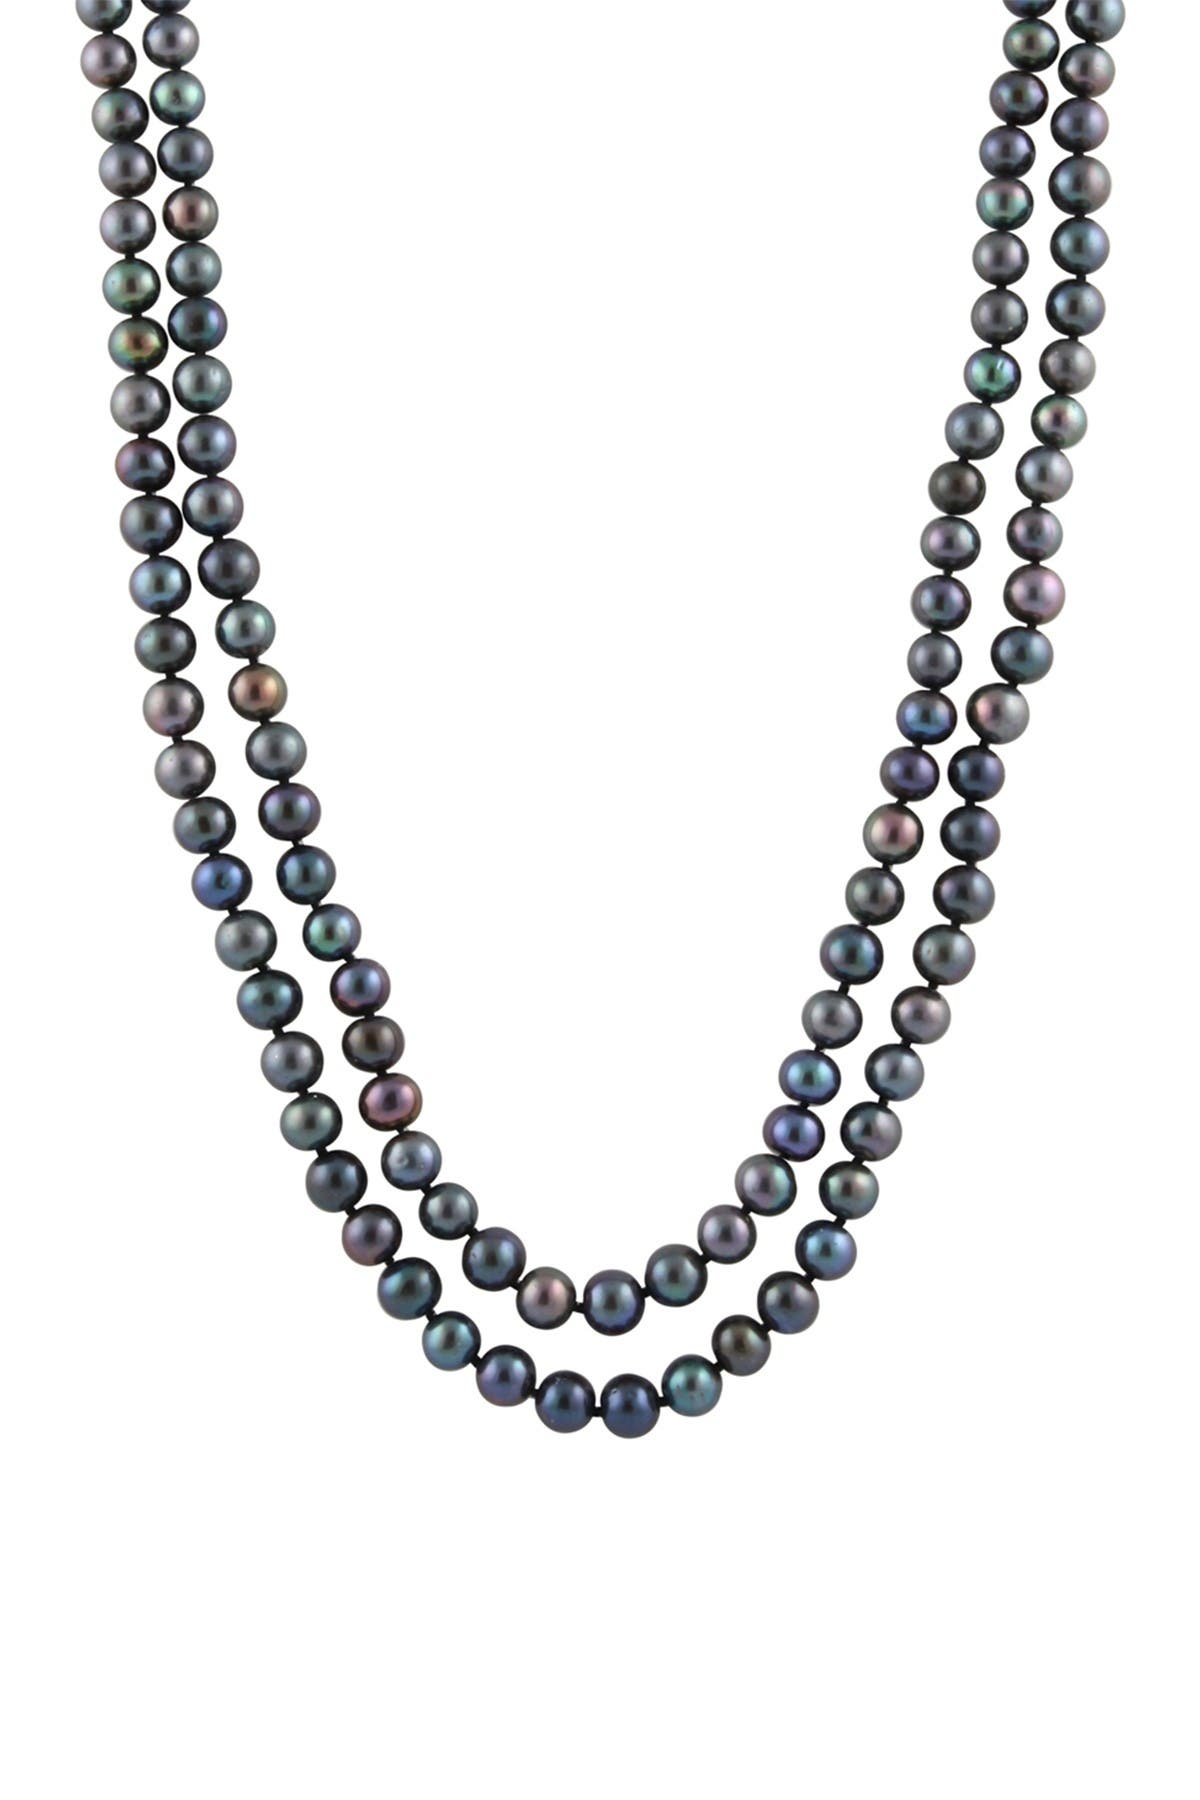 """Image of Splendid Pearls Black 9-10mm Cultured Freshwater Pearl 64"""" Strand Necklace"""